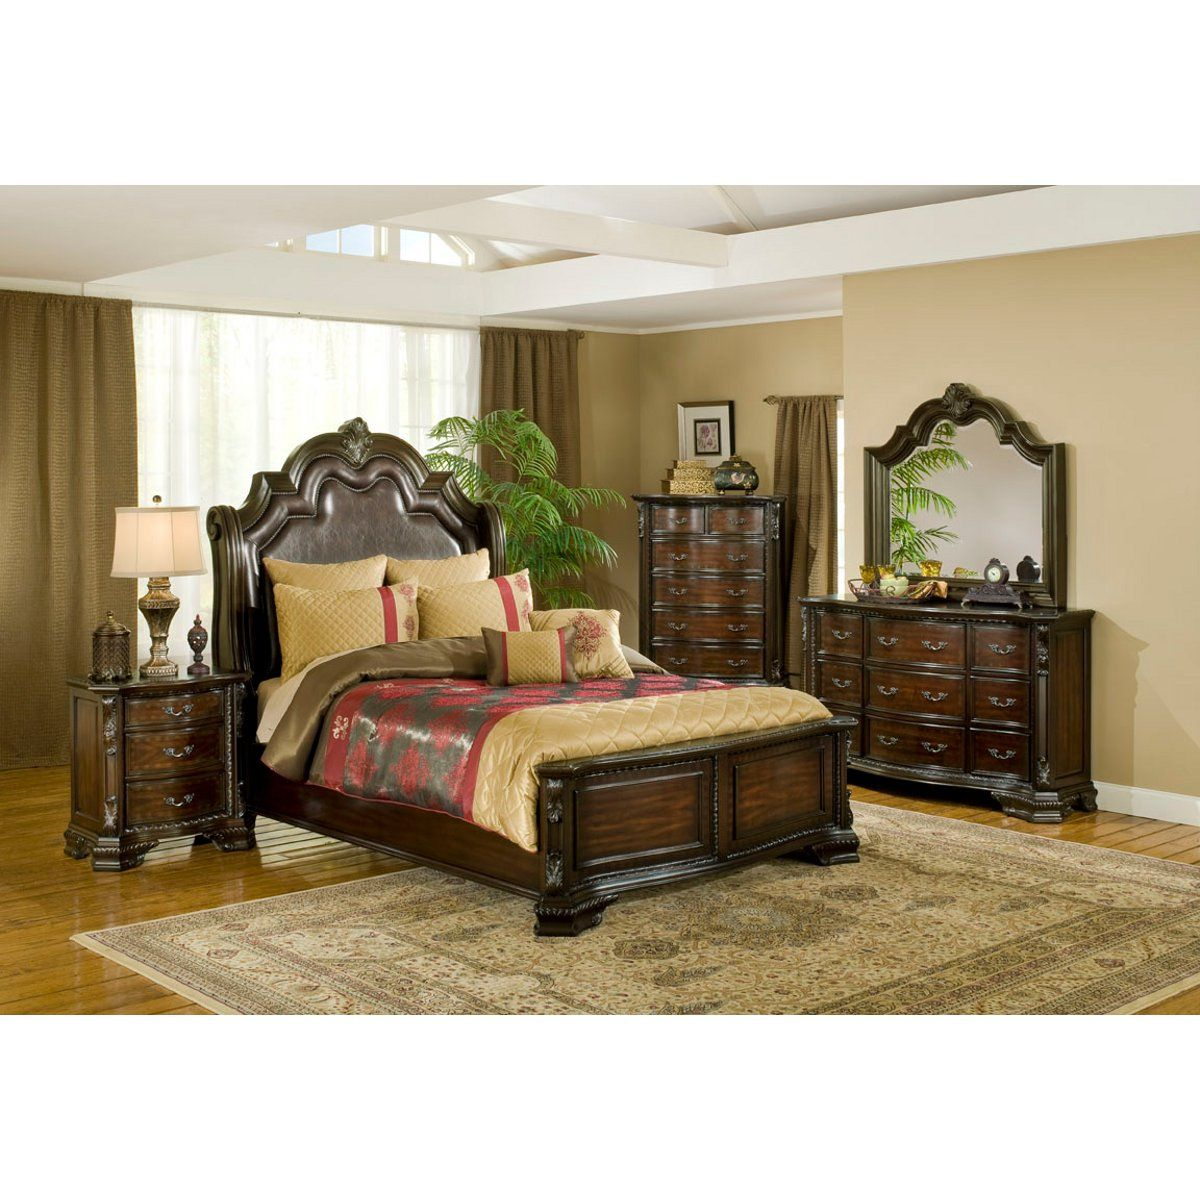 Best Conns Bedroom Furniture Sets What Is The Best Interior 400 x 300